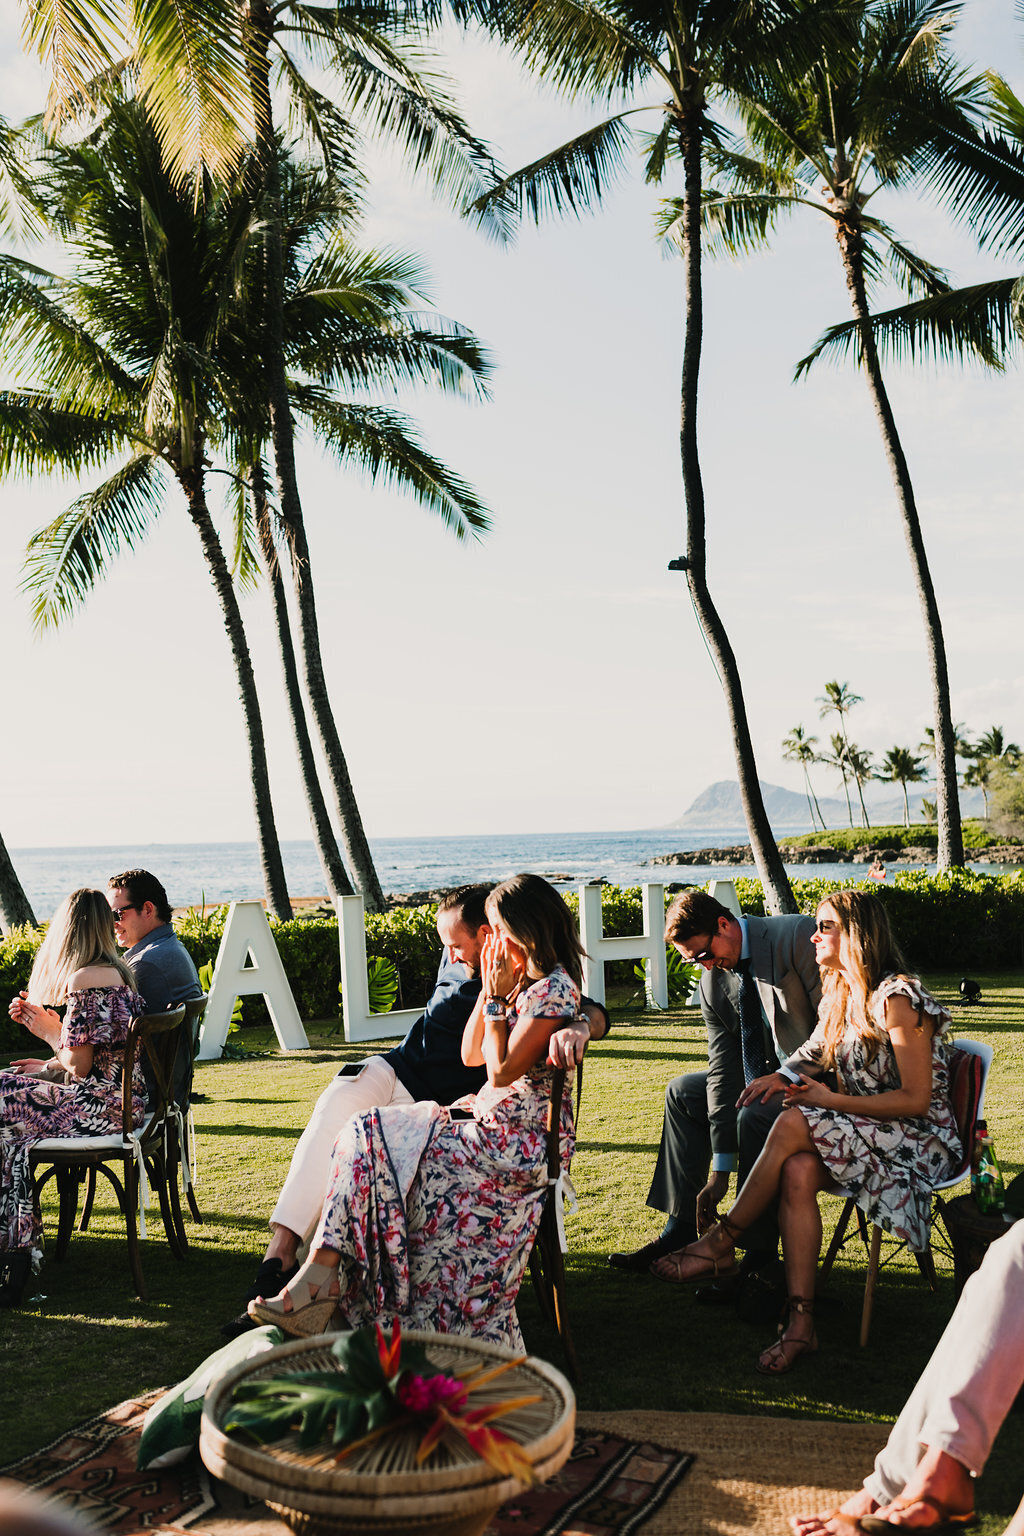 Finishing Touch Hawaii Wedding Planning Design Planner Designer Corporate Social Non Profit Sandra Williams6